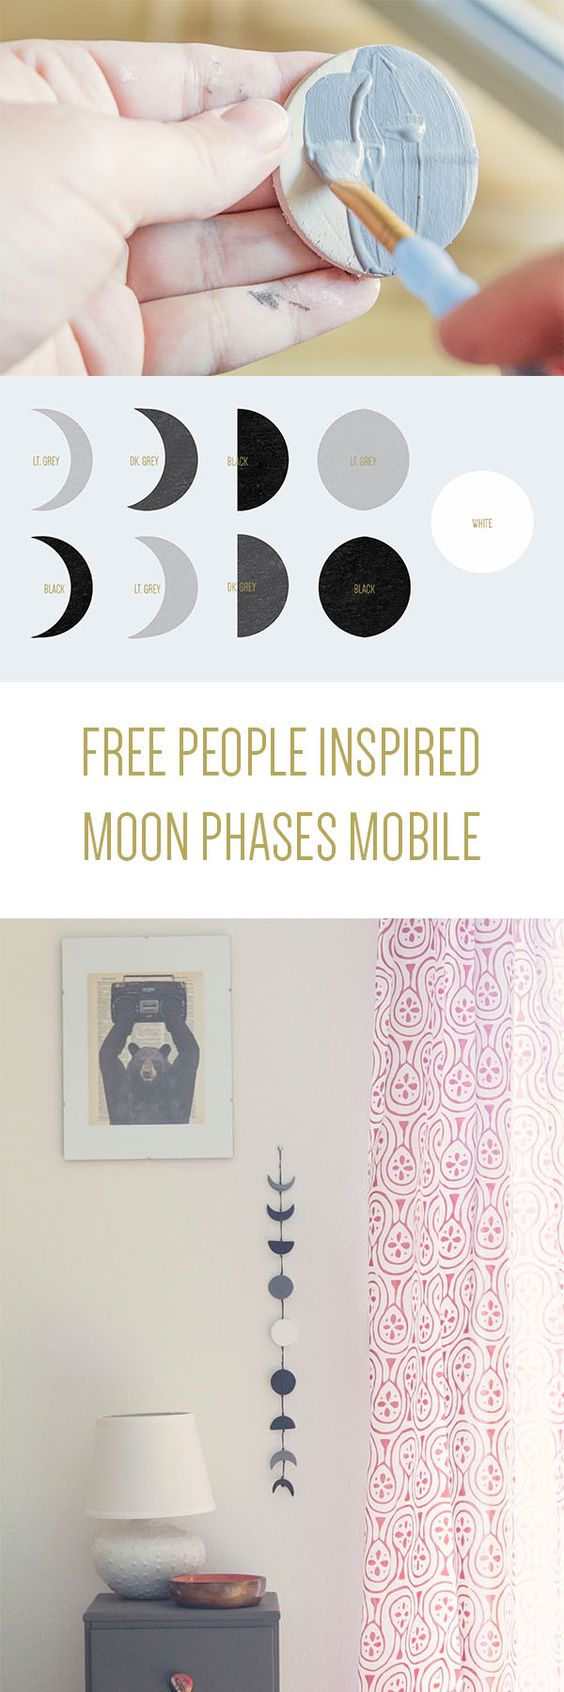 Do it yourself projects diy free people inspired moon phases do it yourself projects diy free people inspired moon phases mobile solutioingenieria Gallery